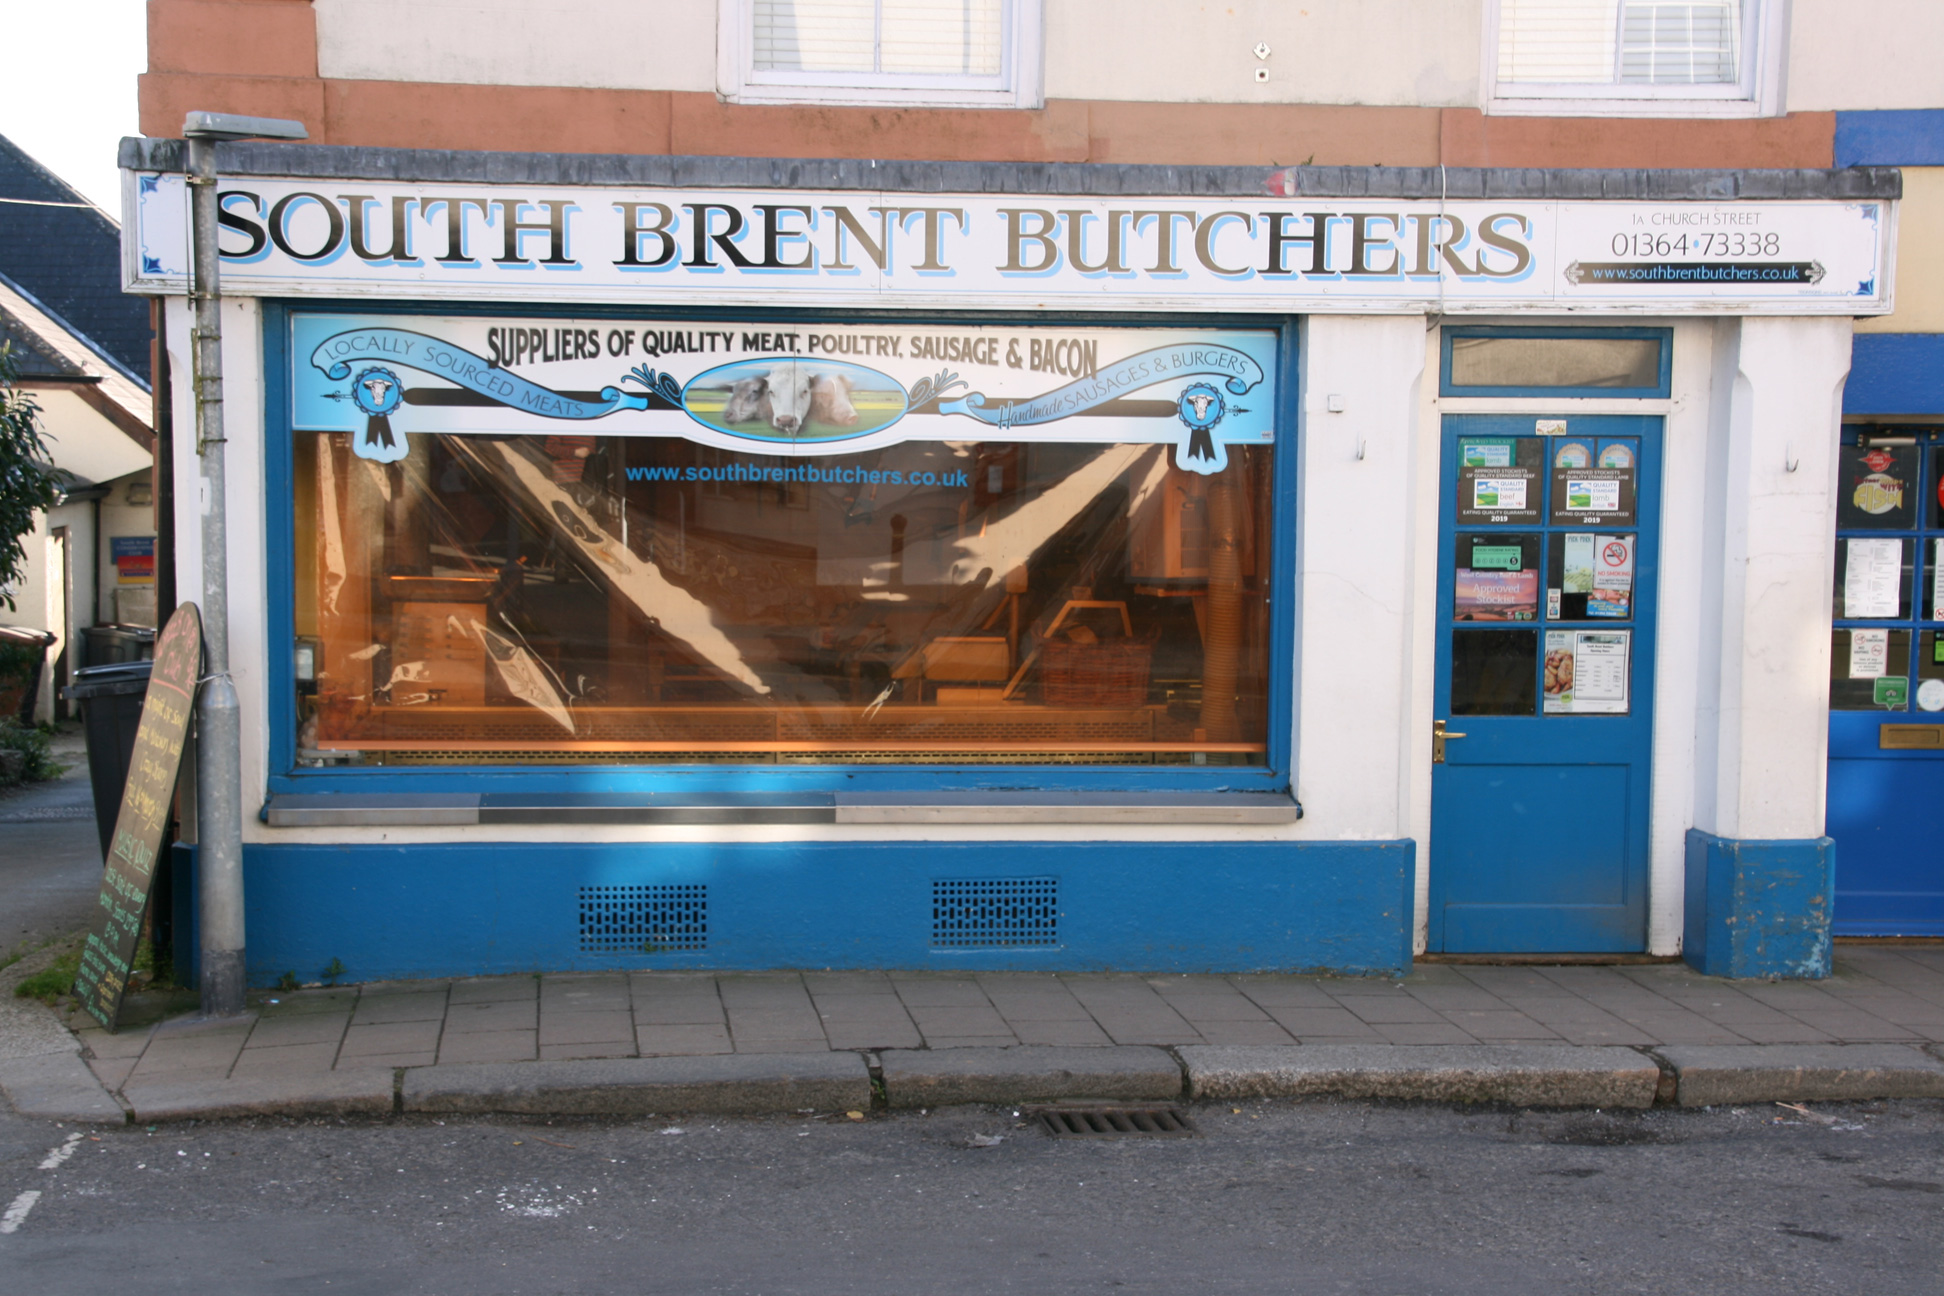 South Brent Butchers